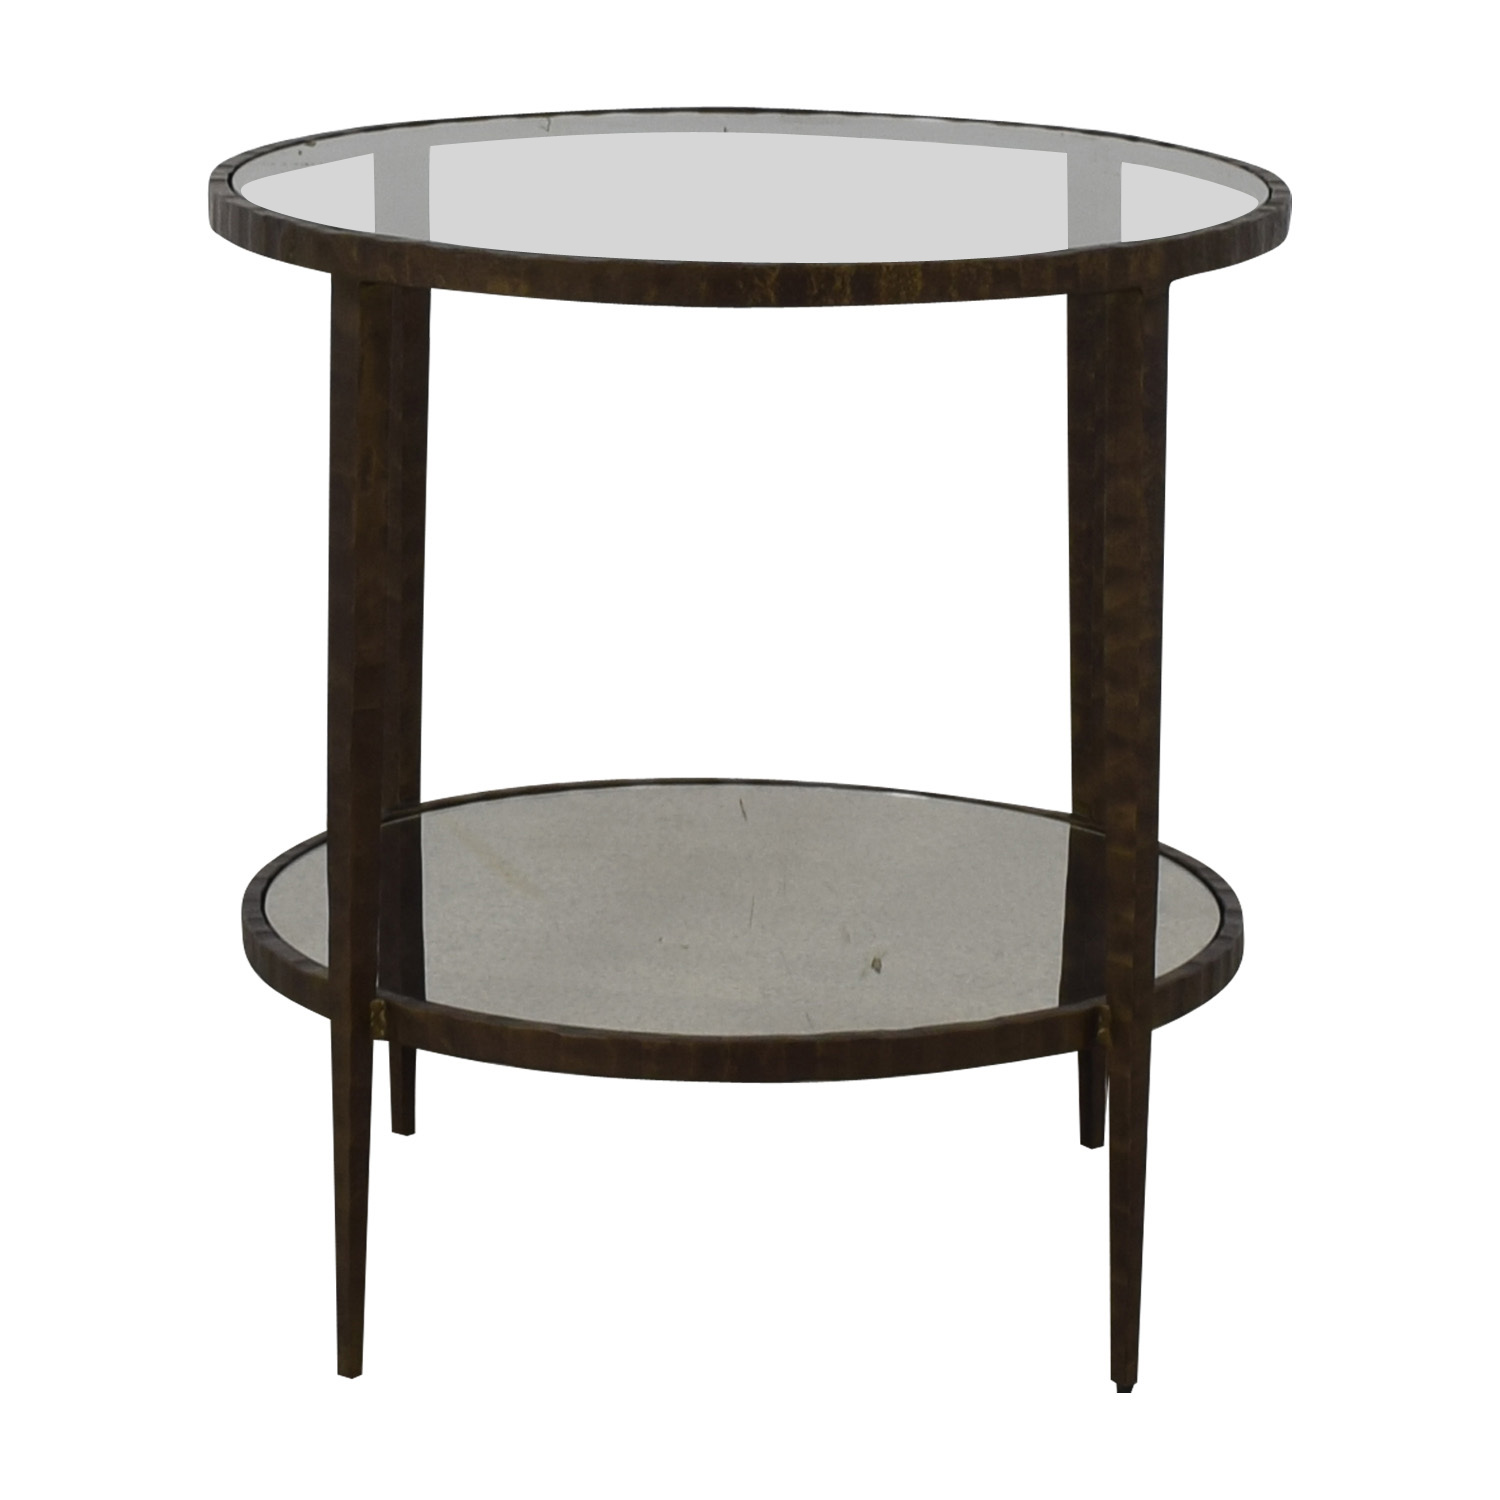 Crate & Barrel Crate & Barrel Clairemont Round Side Table used